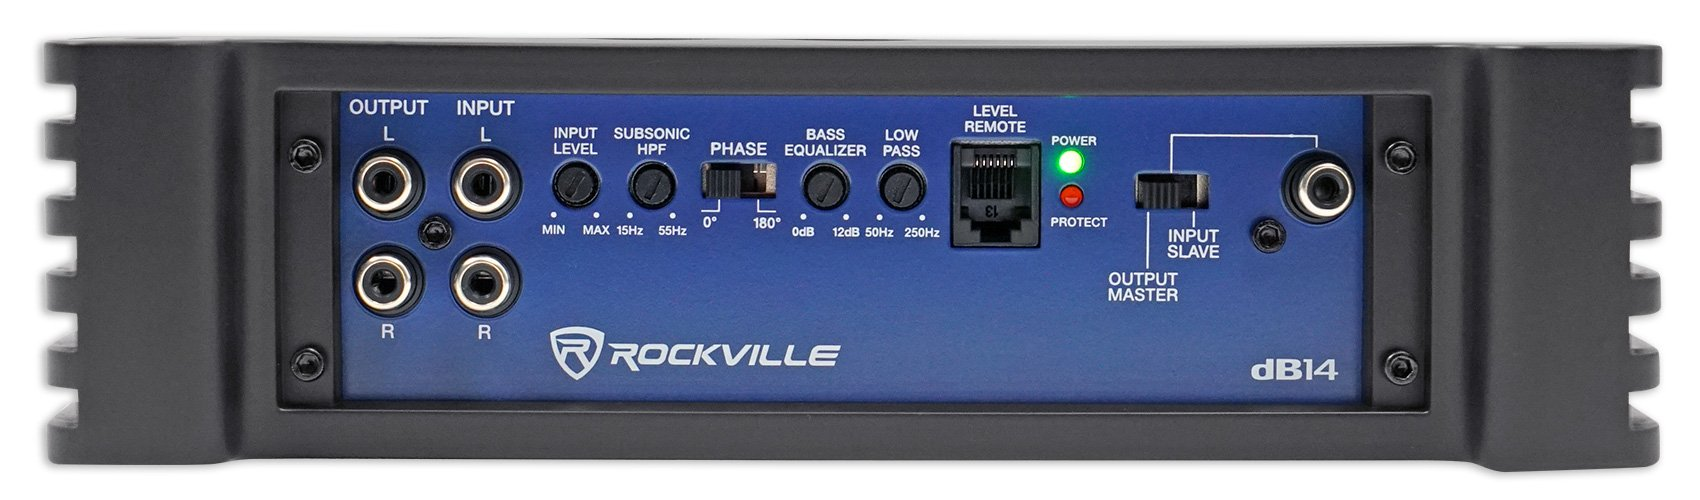 Rockville dB14 4000 Watt/2000w RMS Mono Class D 2 Ohm Amplifier Car Audio Amp by Rockville (Image #4)